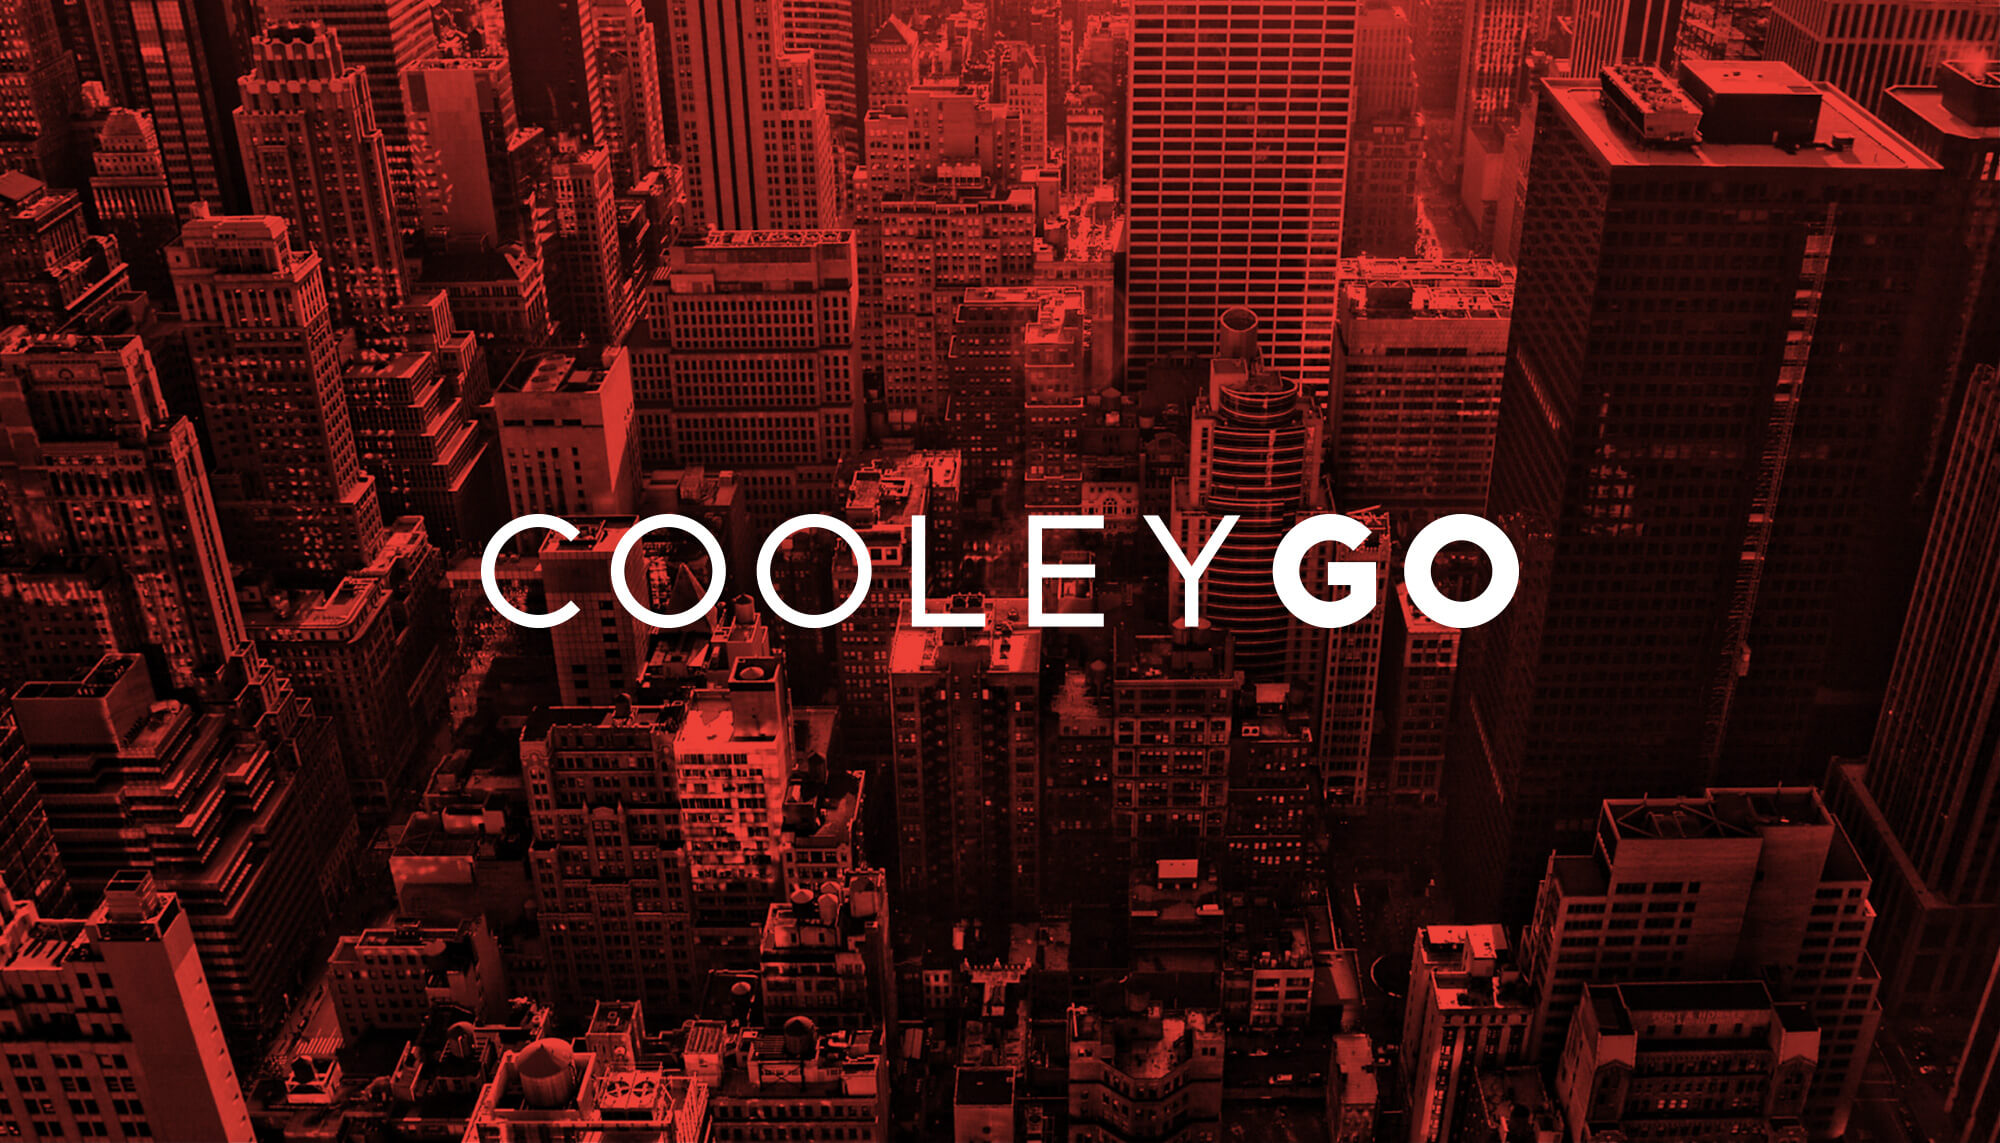 cooley_01